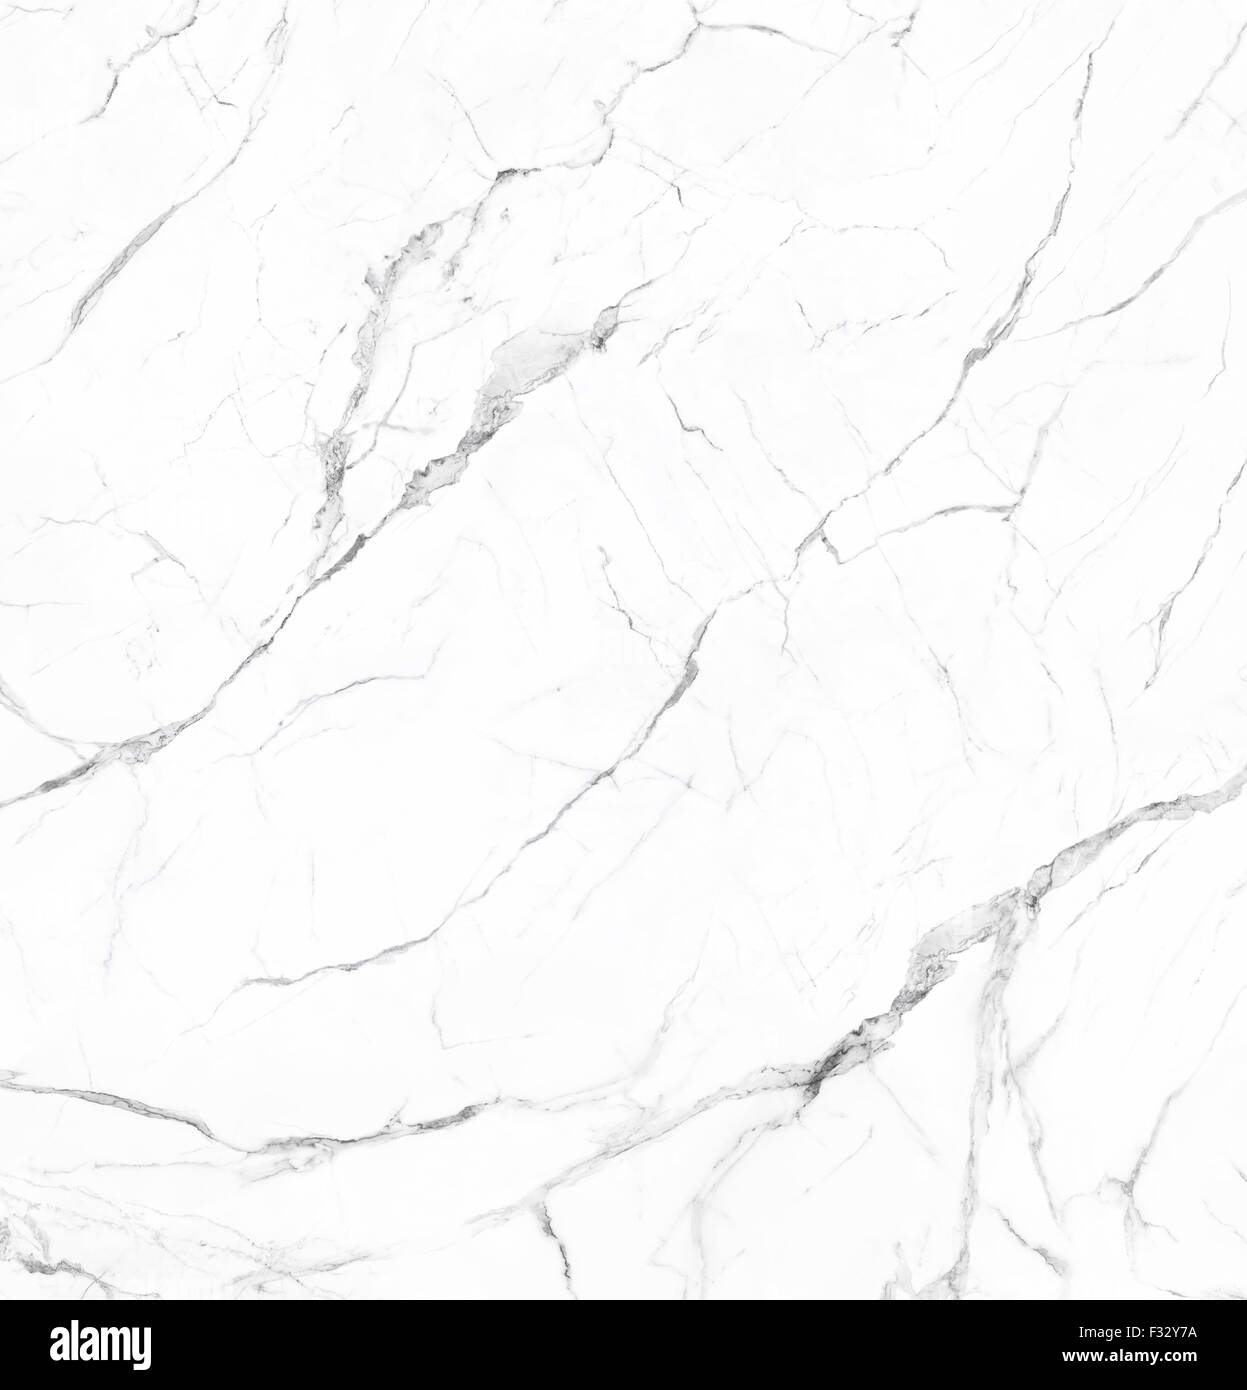 White marble with veins natural stone texture background Stock Photo